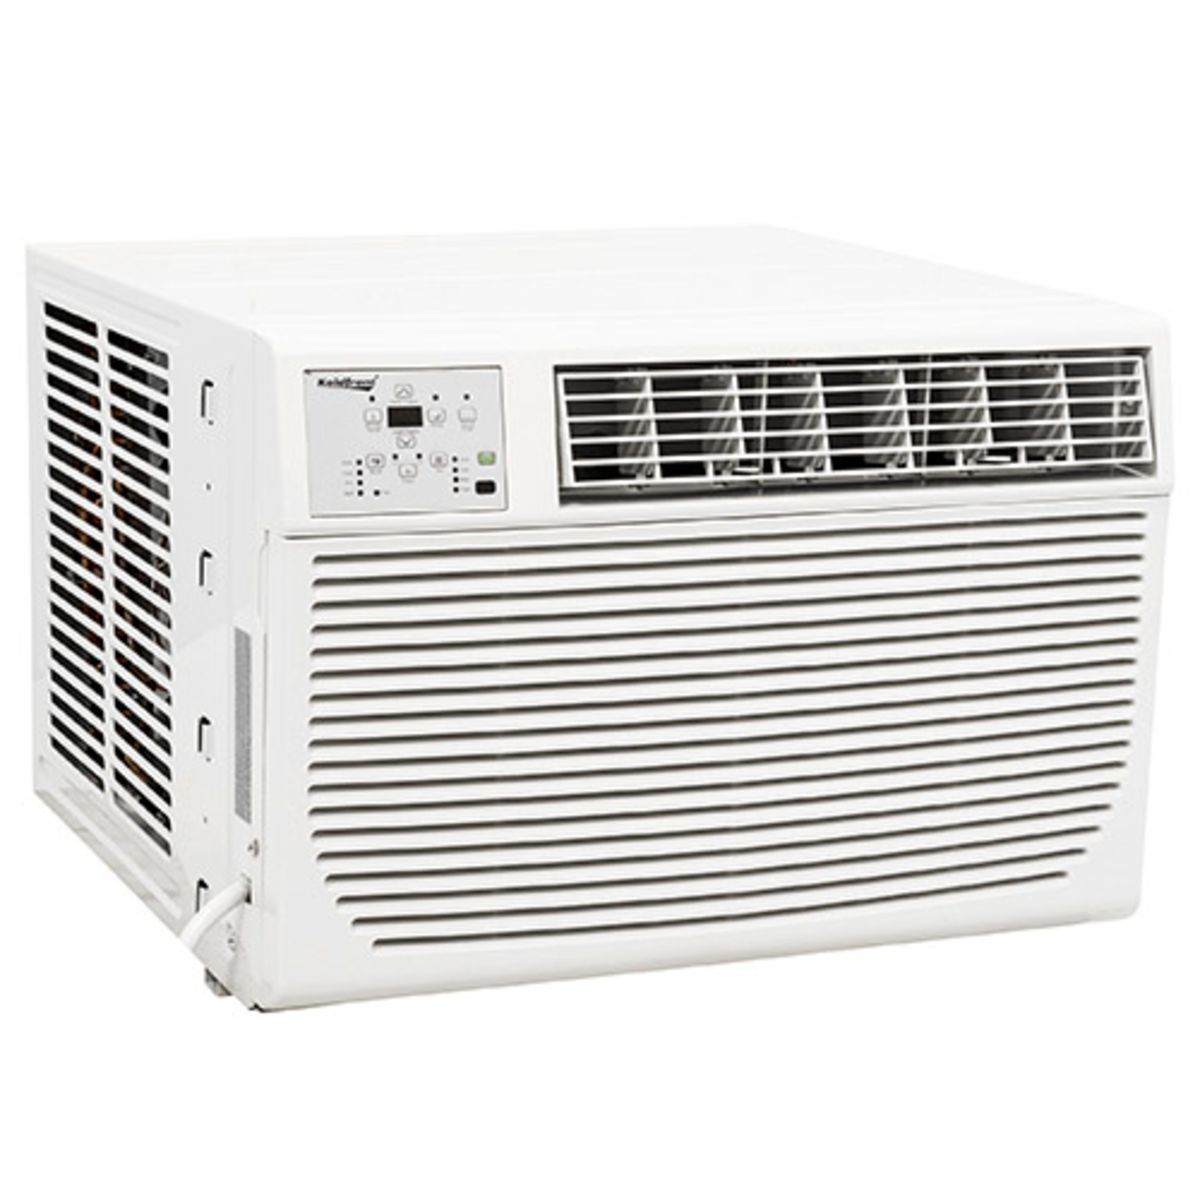 koldfront 12,000 btu window air conditioner with supplemental heat